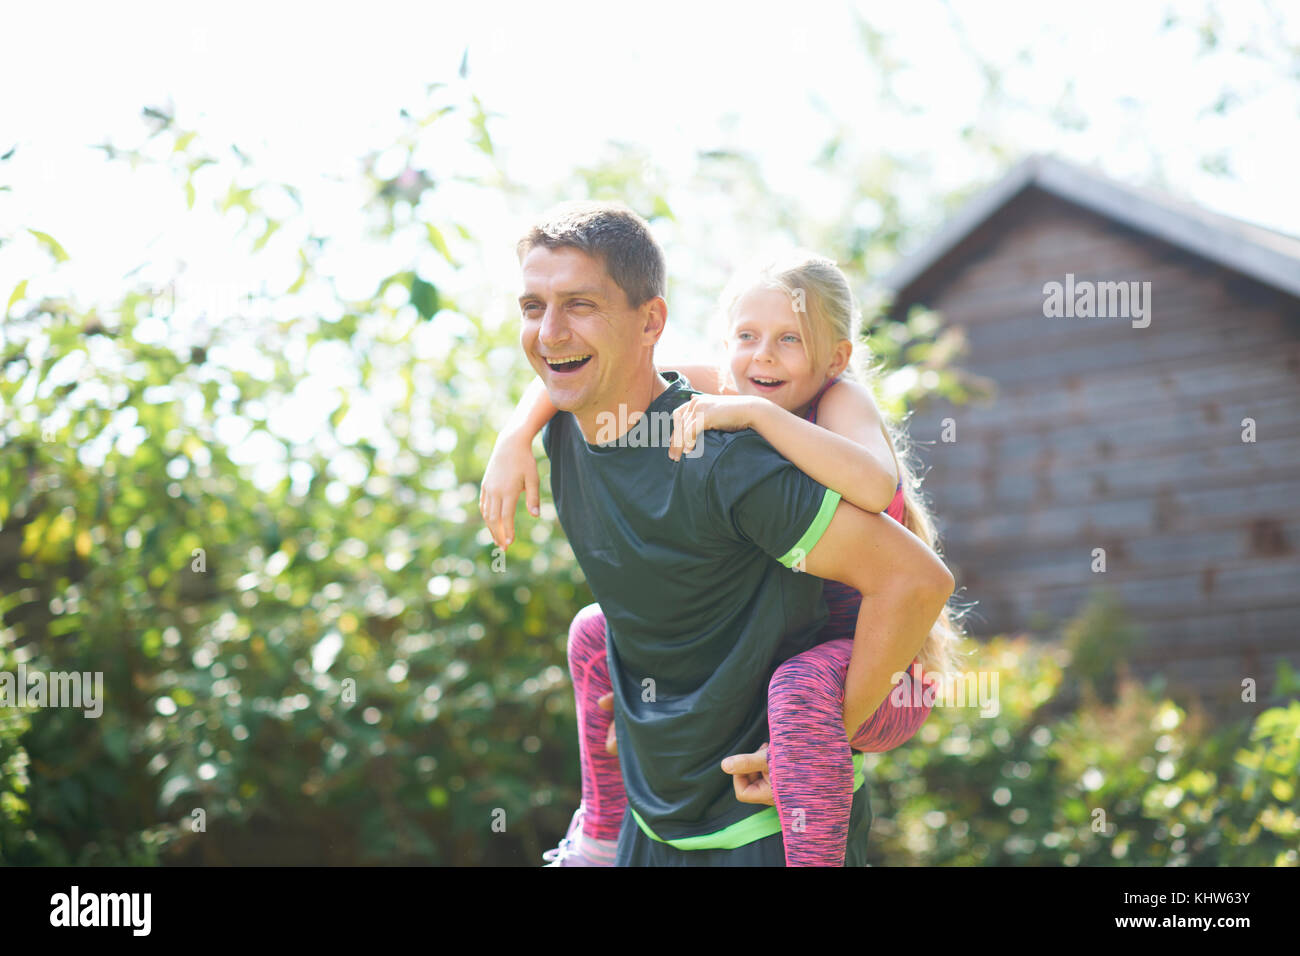 Father giving daughter piggyback in garden - Stock Image